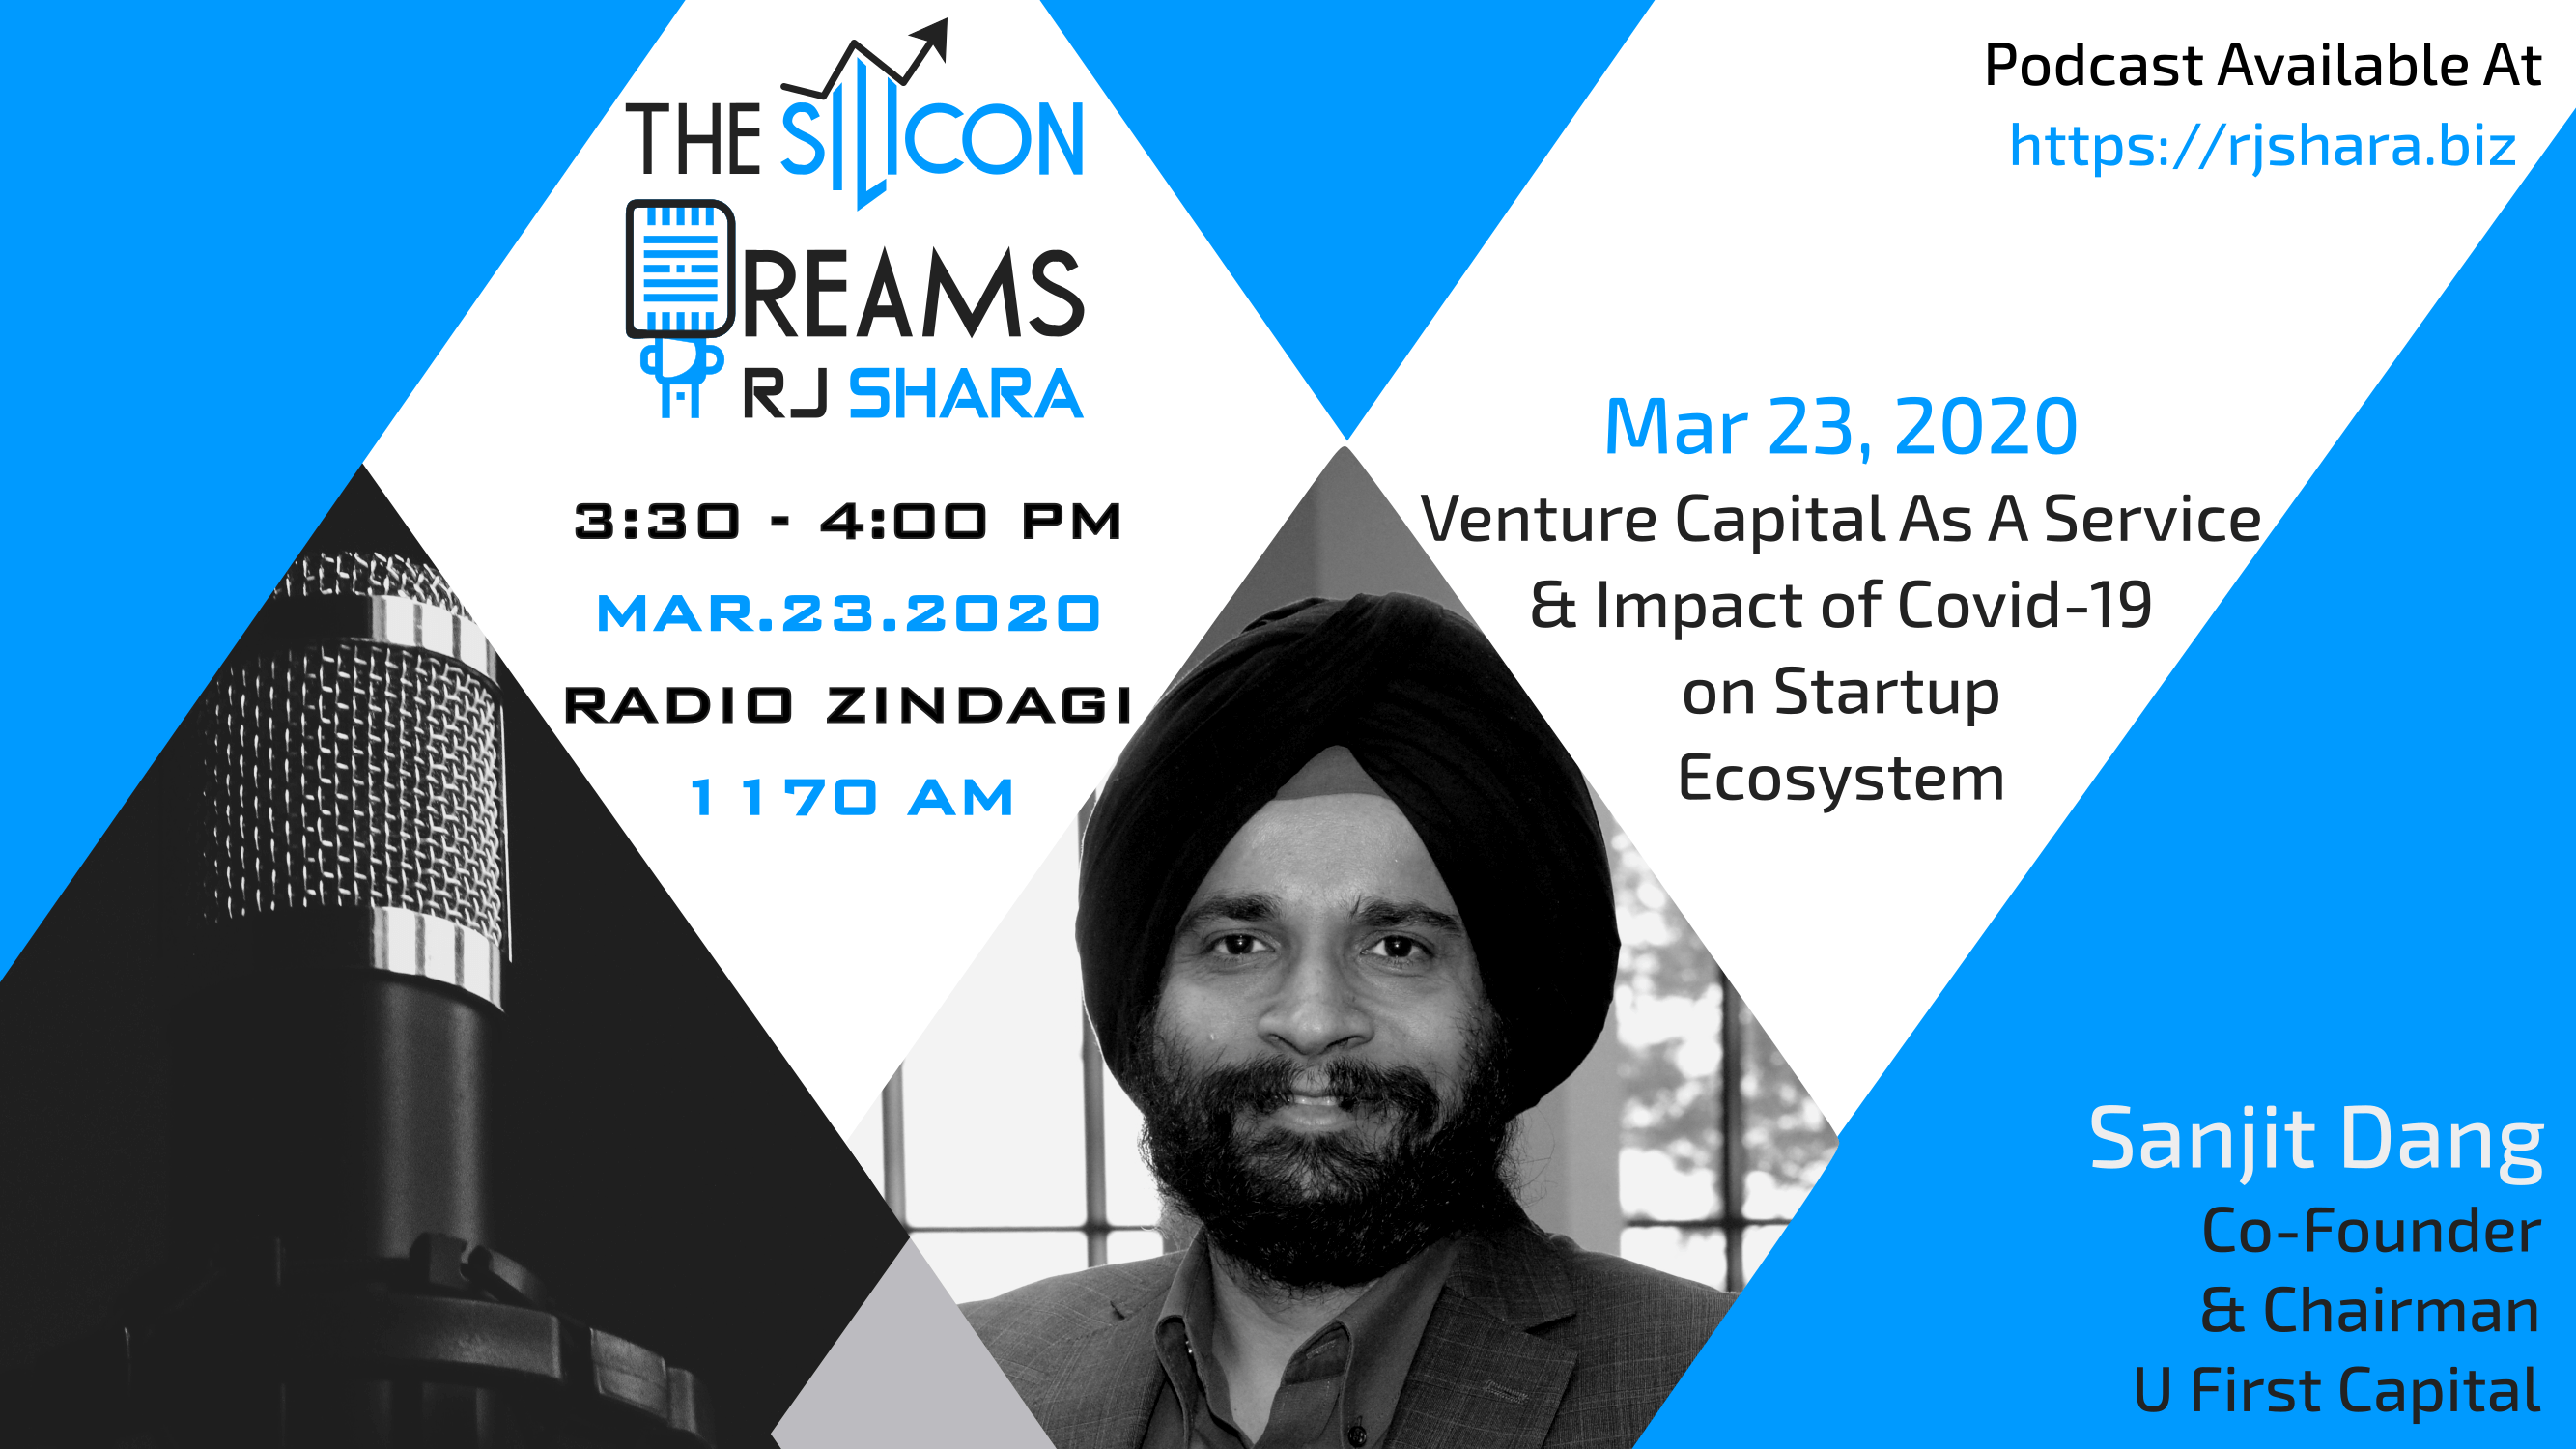 Dr. Sanjit Dang on The Silicon Dream discussing venture capital as a service